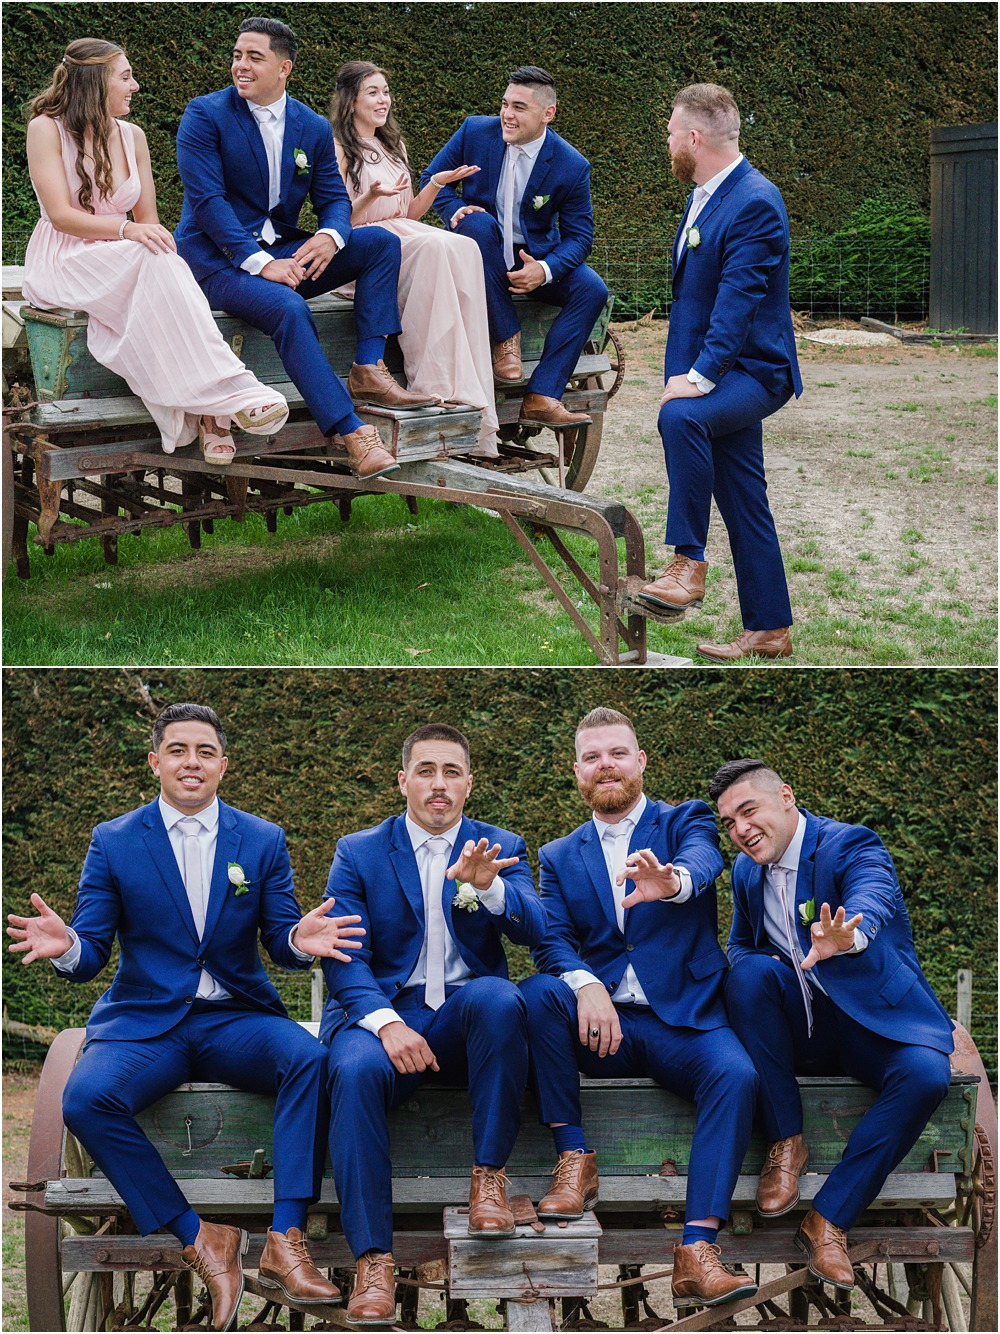 bridal party sitting on a rustic rustic ploughing machine during wedding photos at lacebark